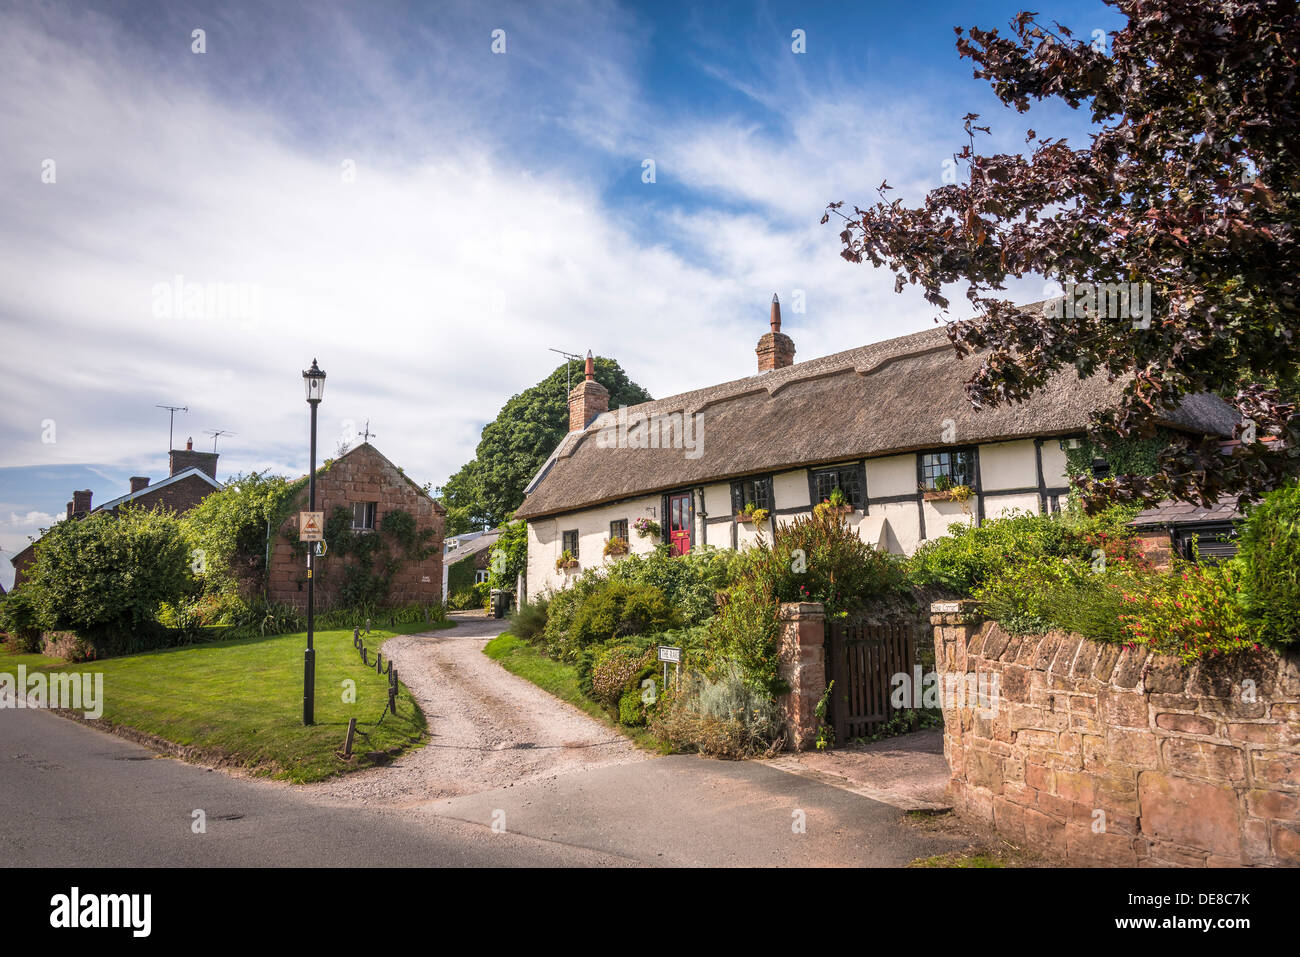 Burton a village on the Wirral Peninsula. Thatched cottage. - Stock Image